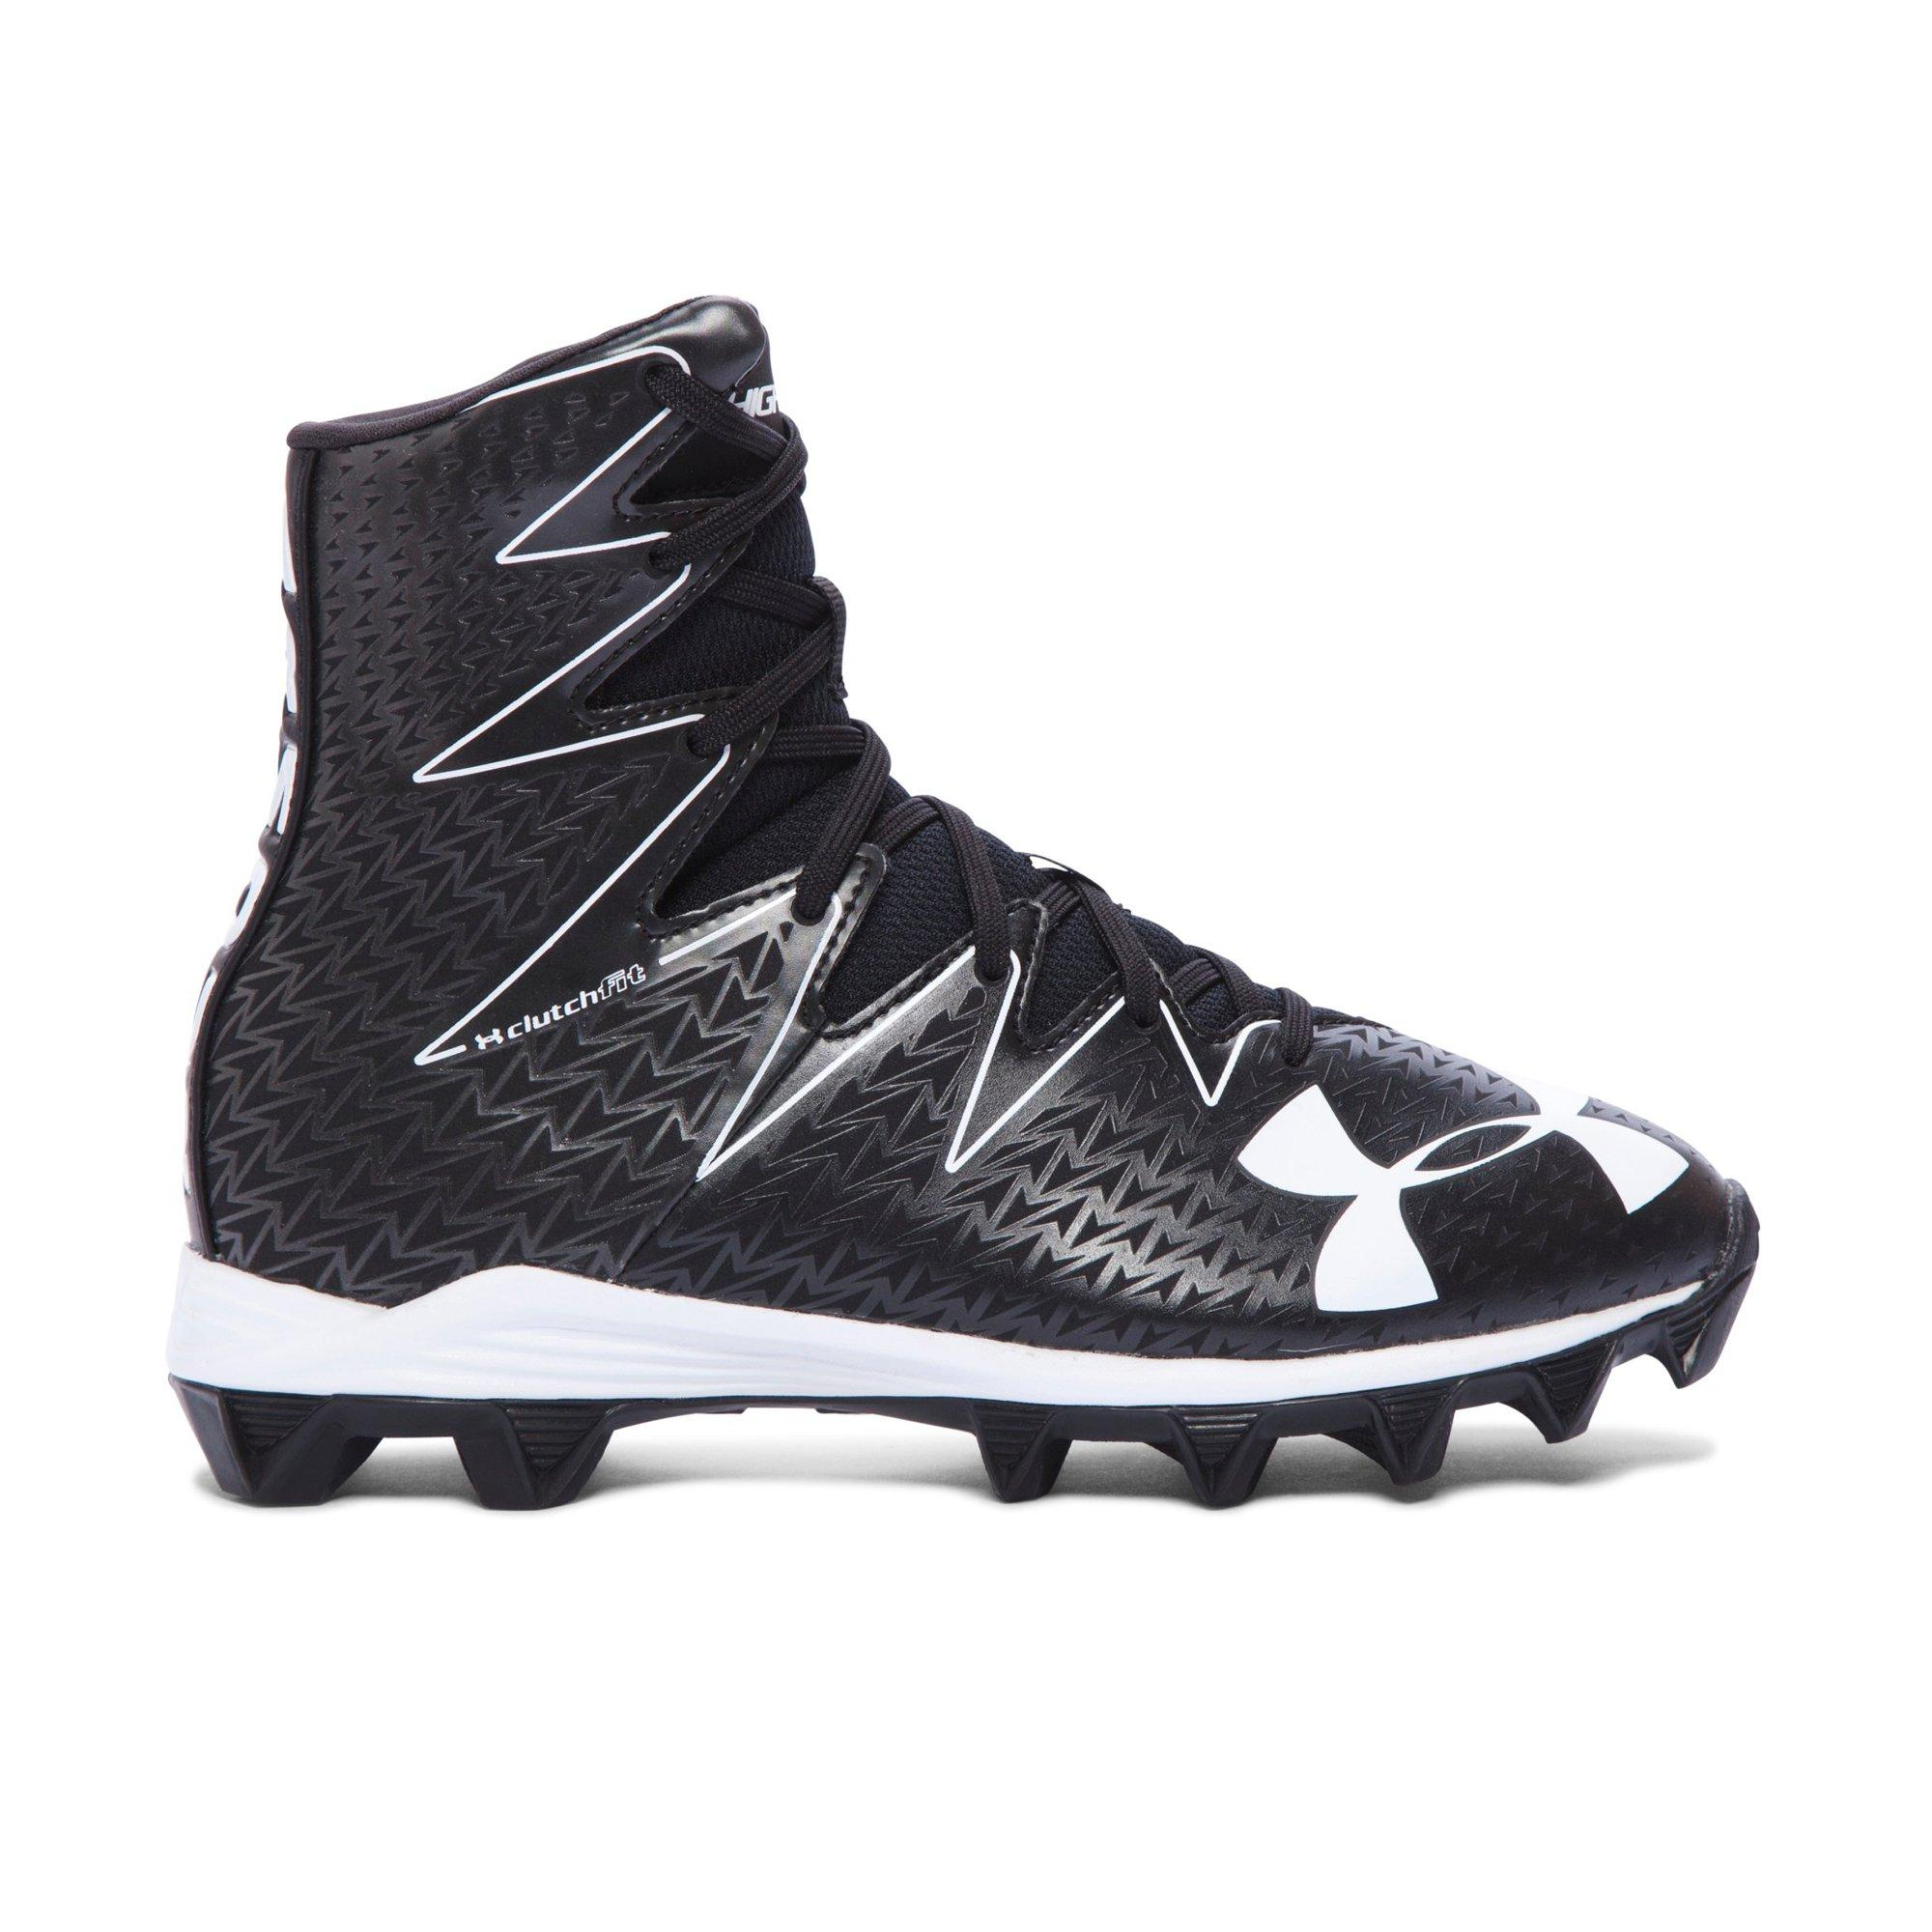 Shoe Type. Cleat